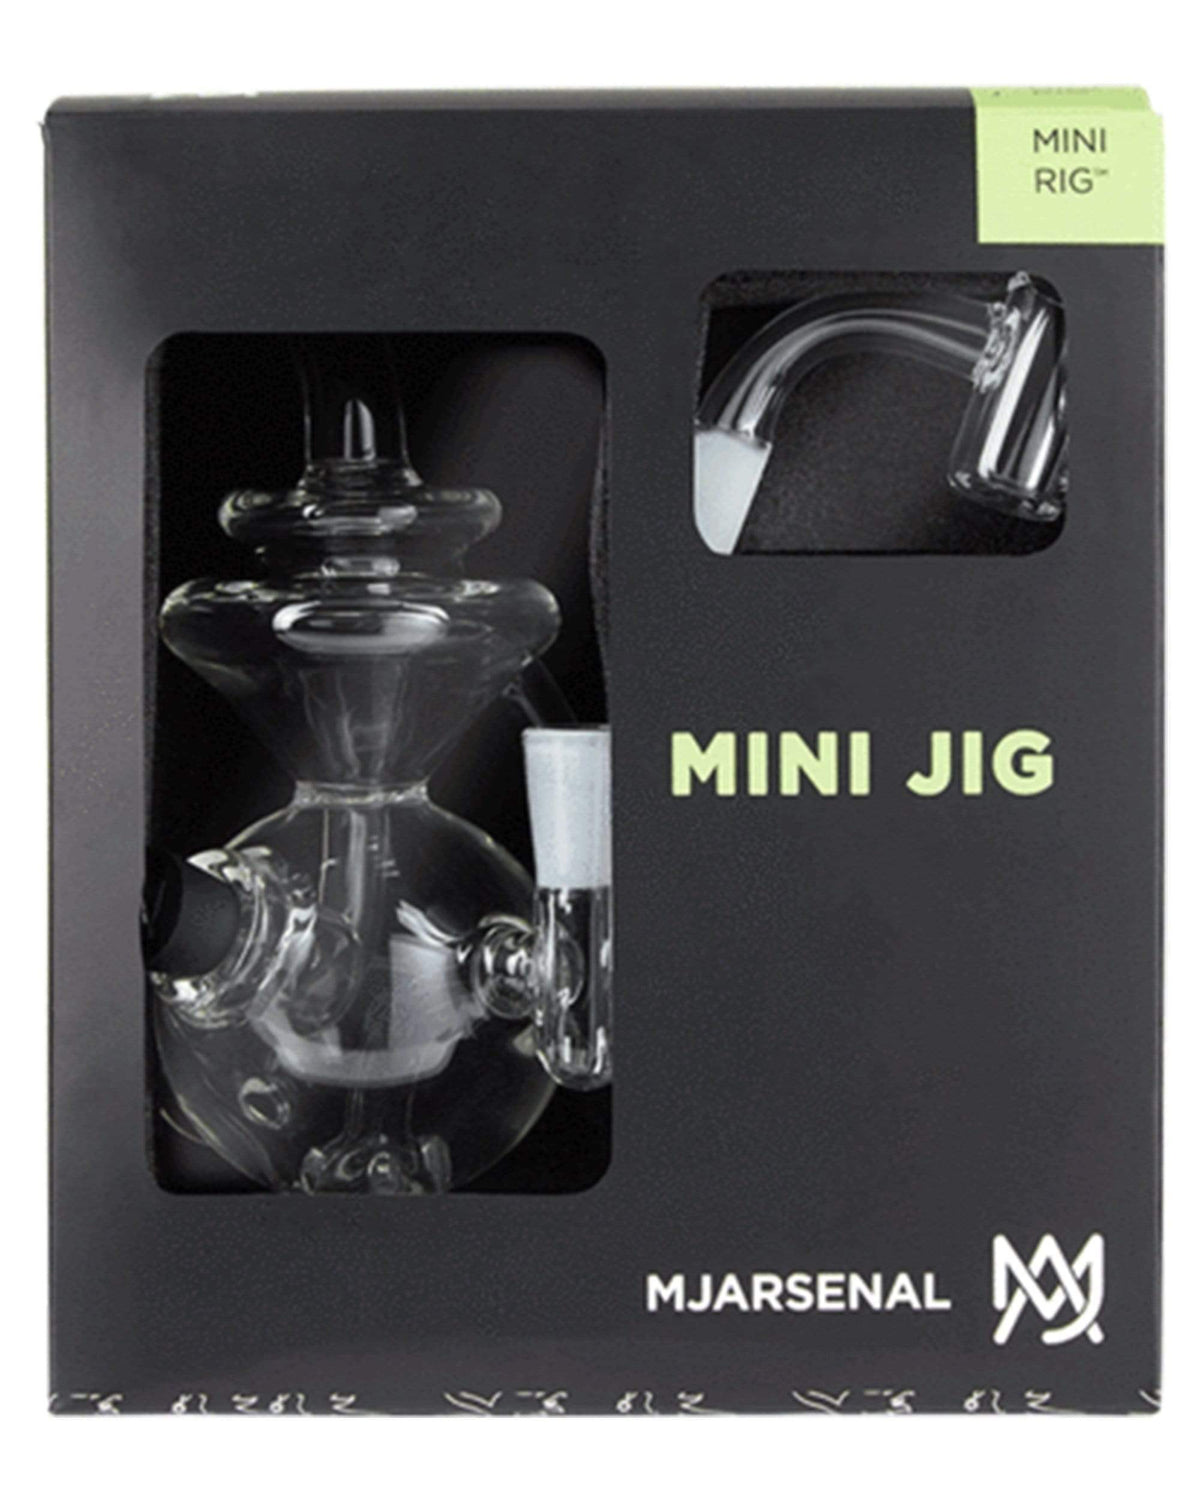 MJ Arsenal Mini Jig Recycler Box